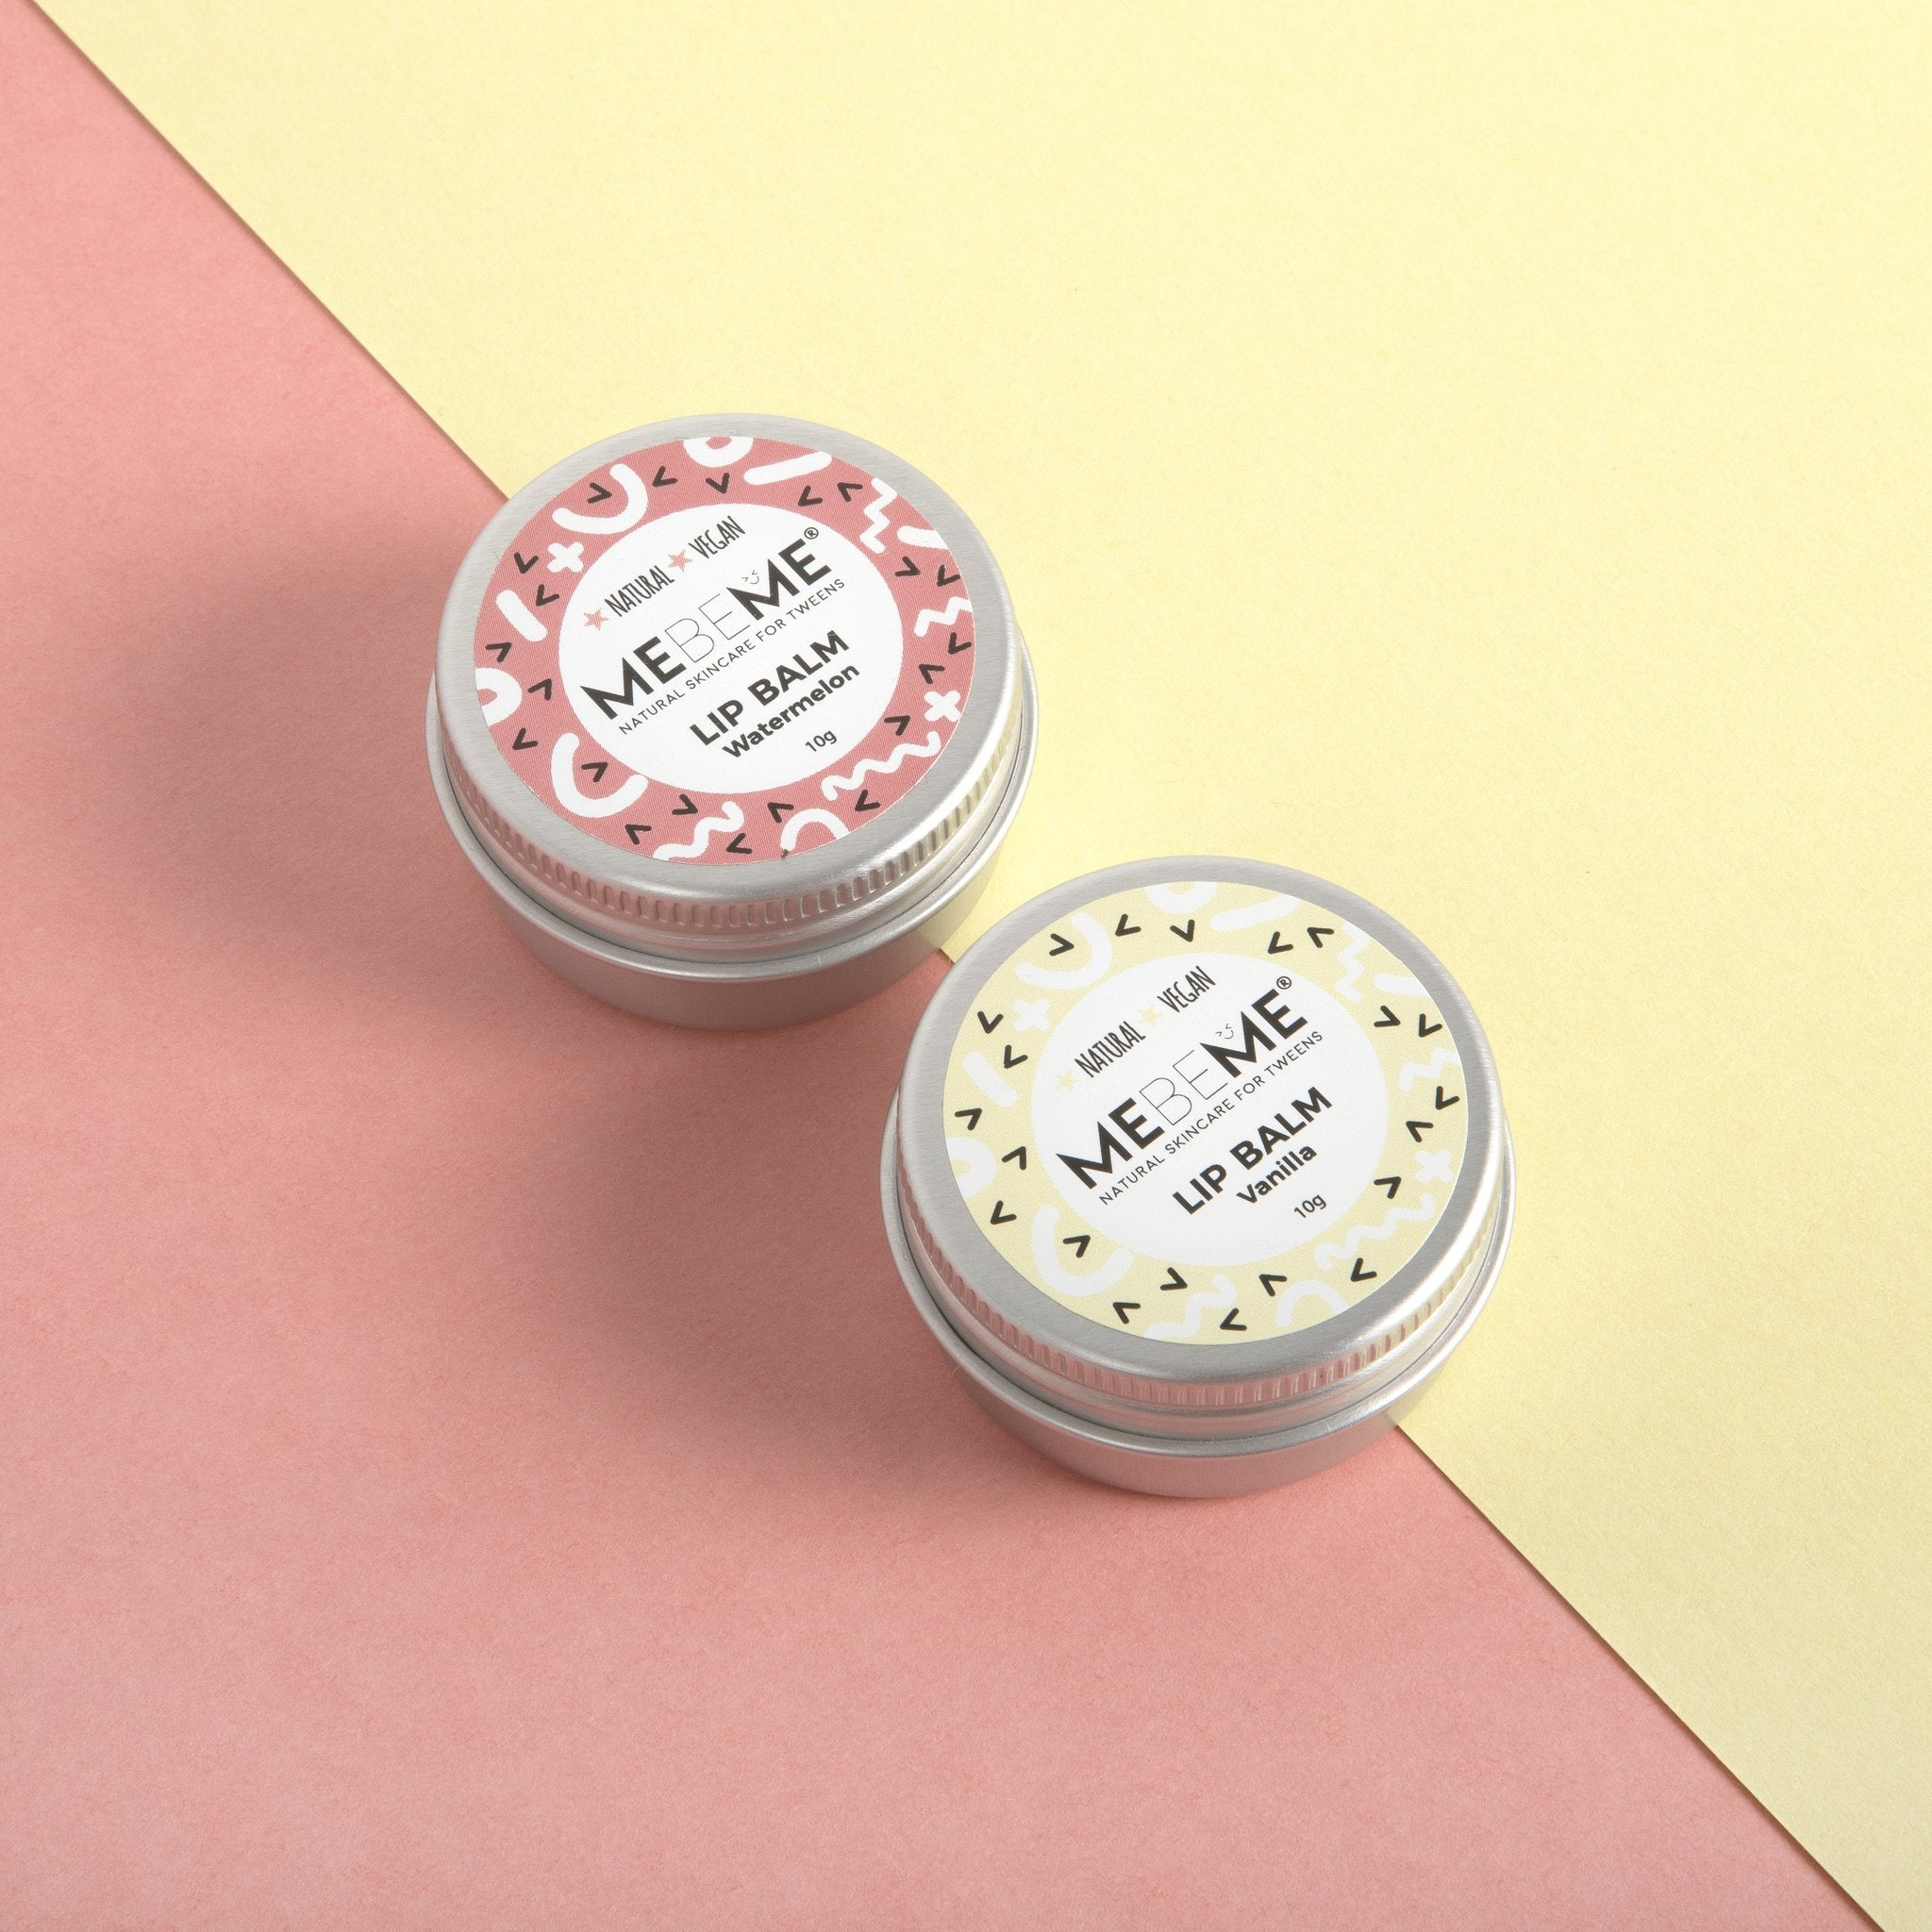 'MeBeMe' lip balm - vanilla - The Present Factory